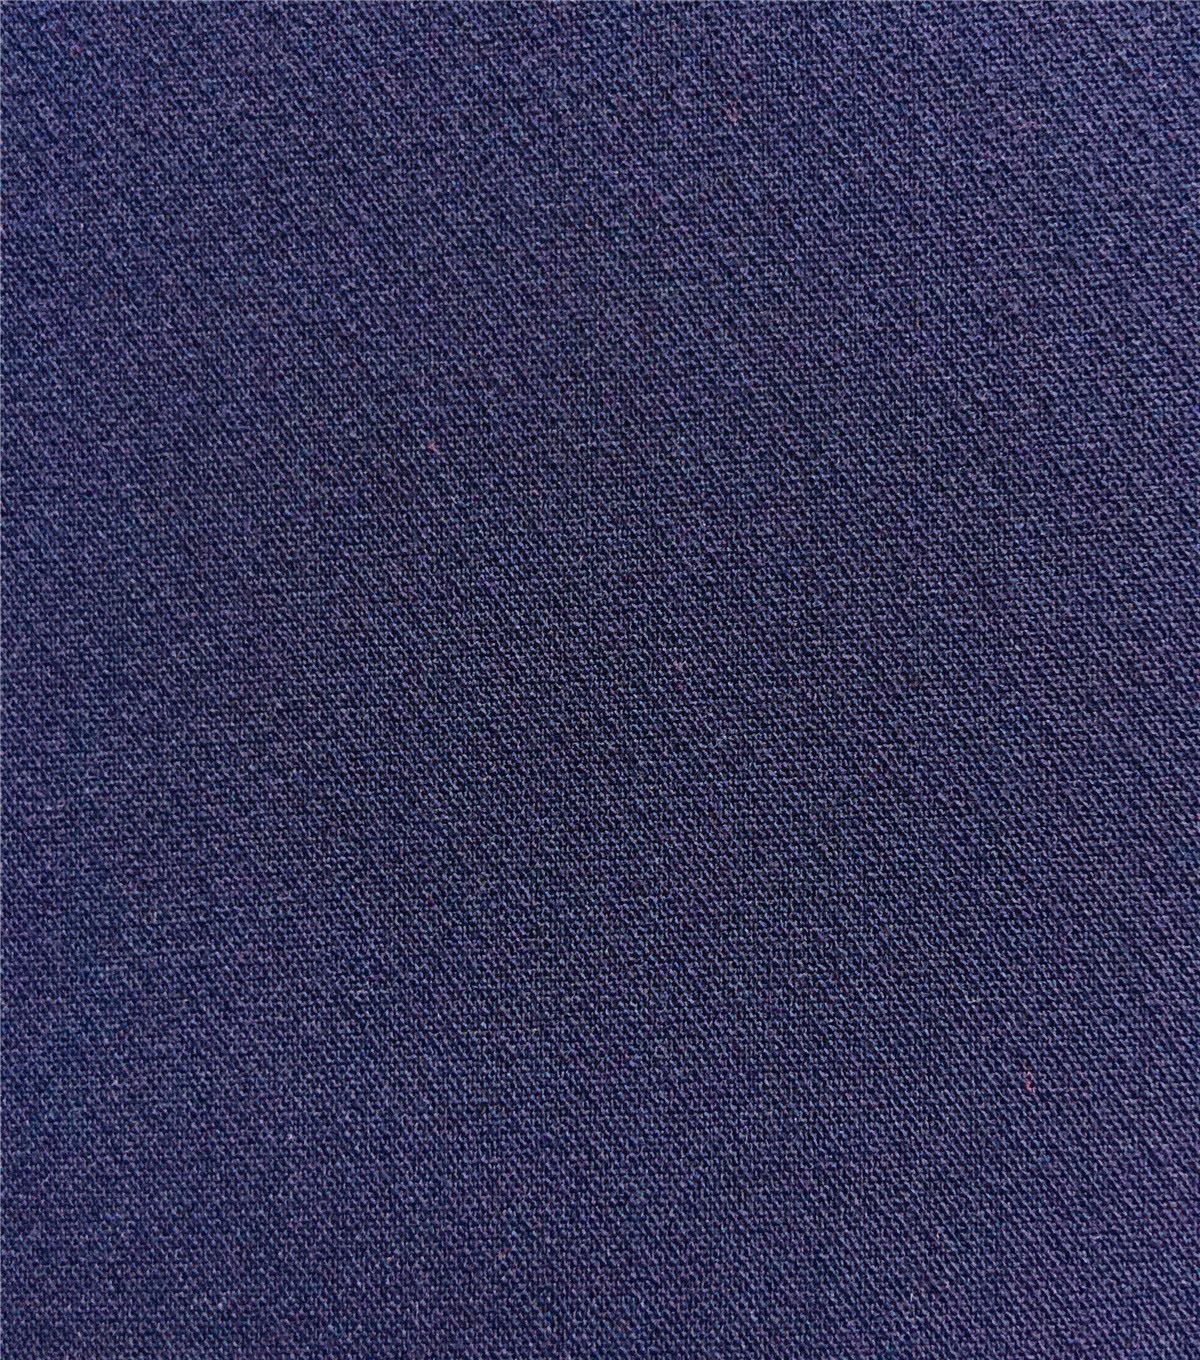 Sportswear Stretch Poly Rayon Fabric-Eclipse